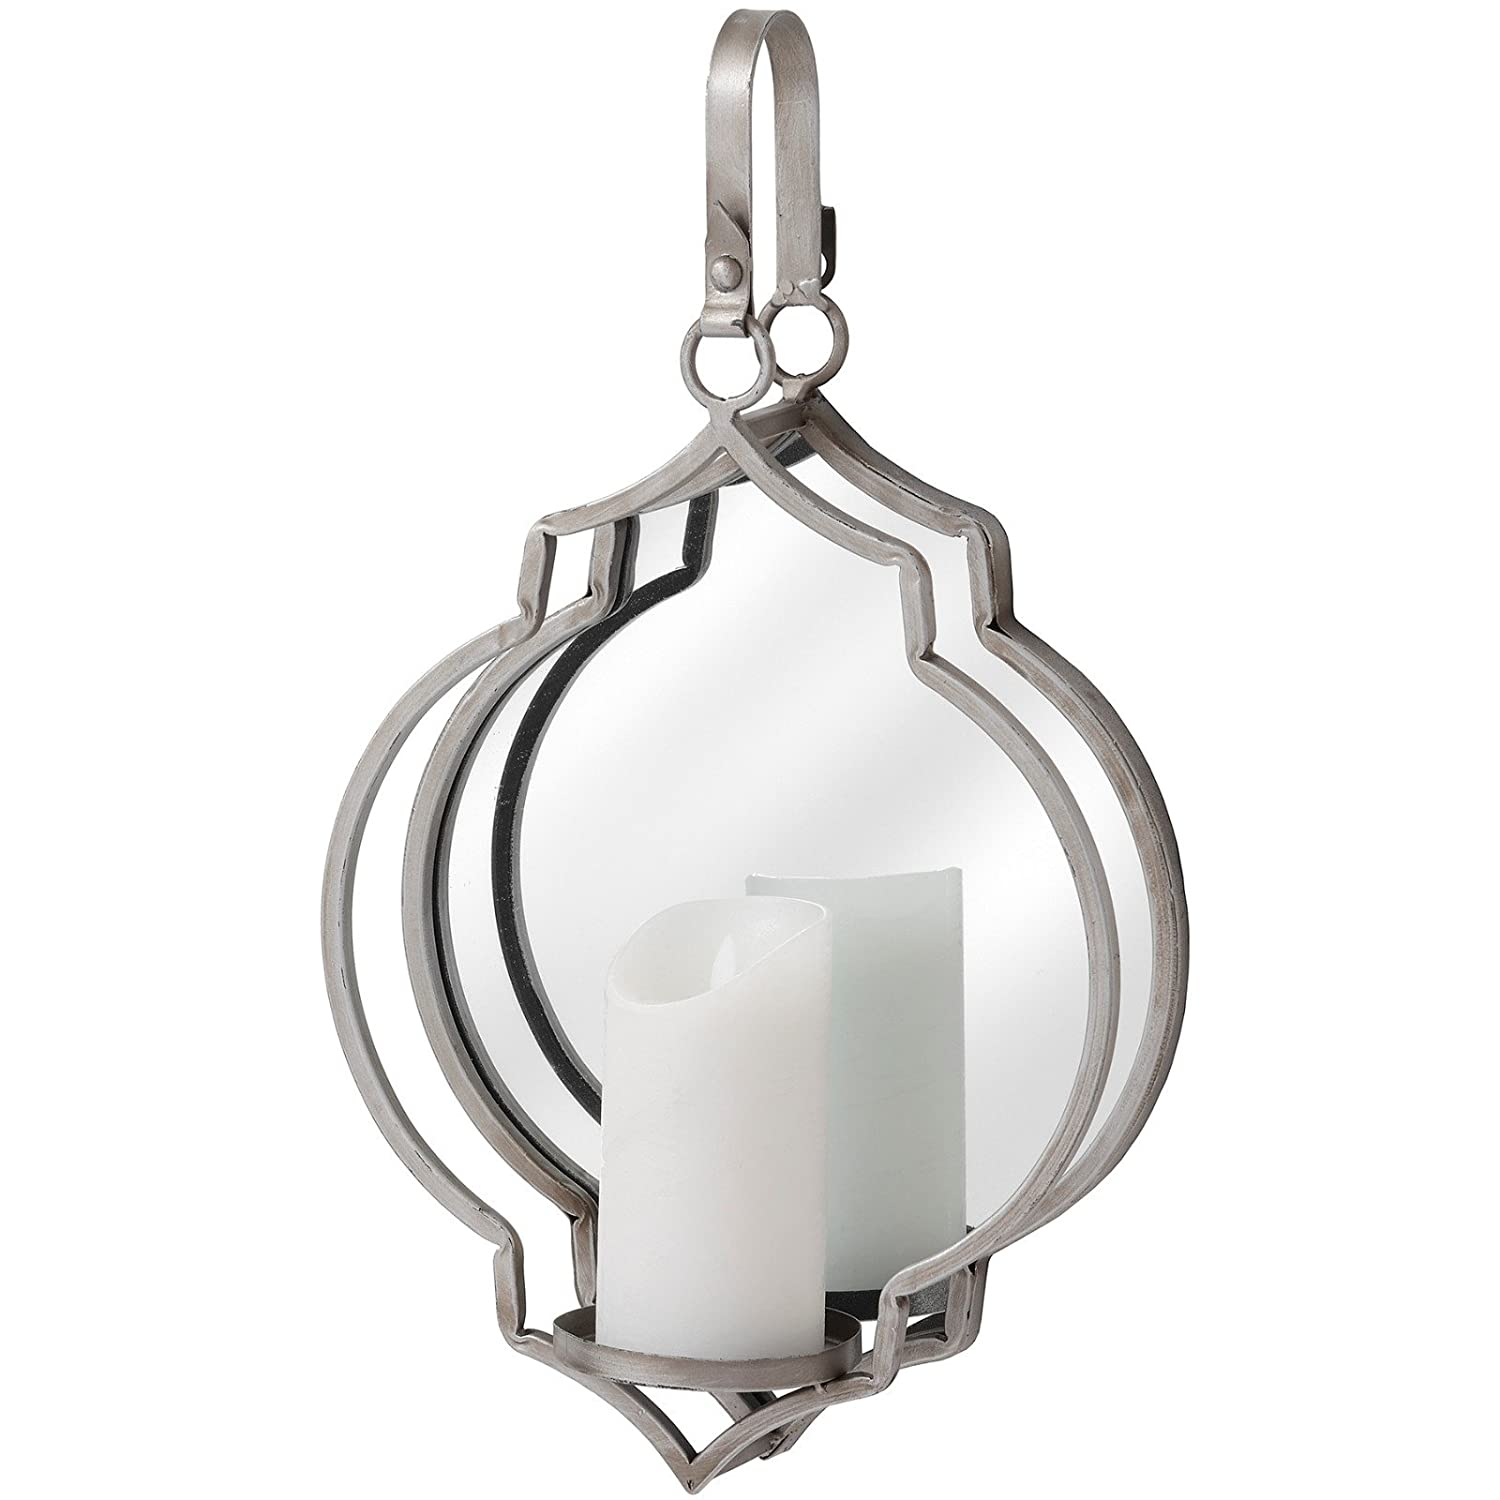 LHI Solid Distressed Modern Silver Wall Sconce Candle Holder w Mirror Wall Mounted 47.5cm